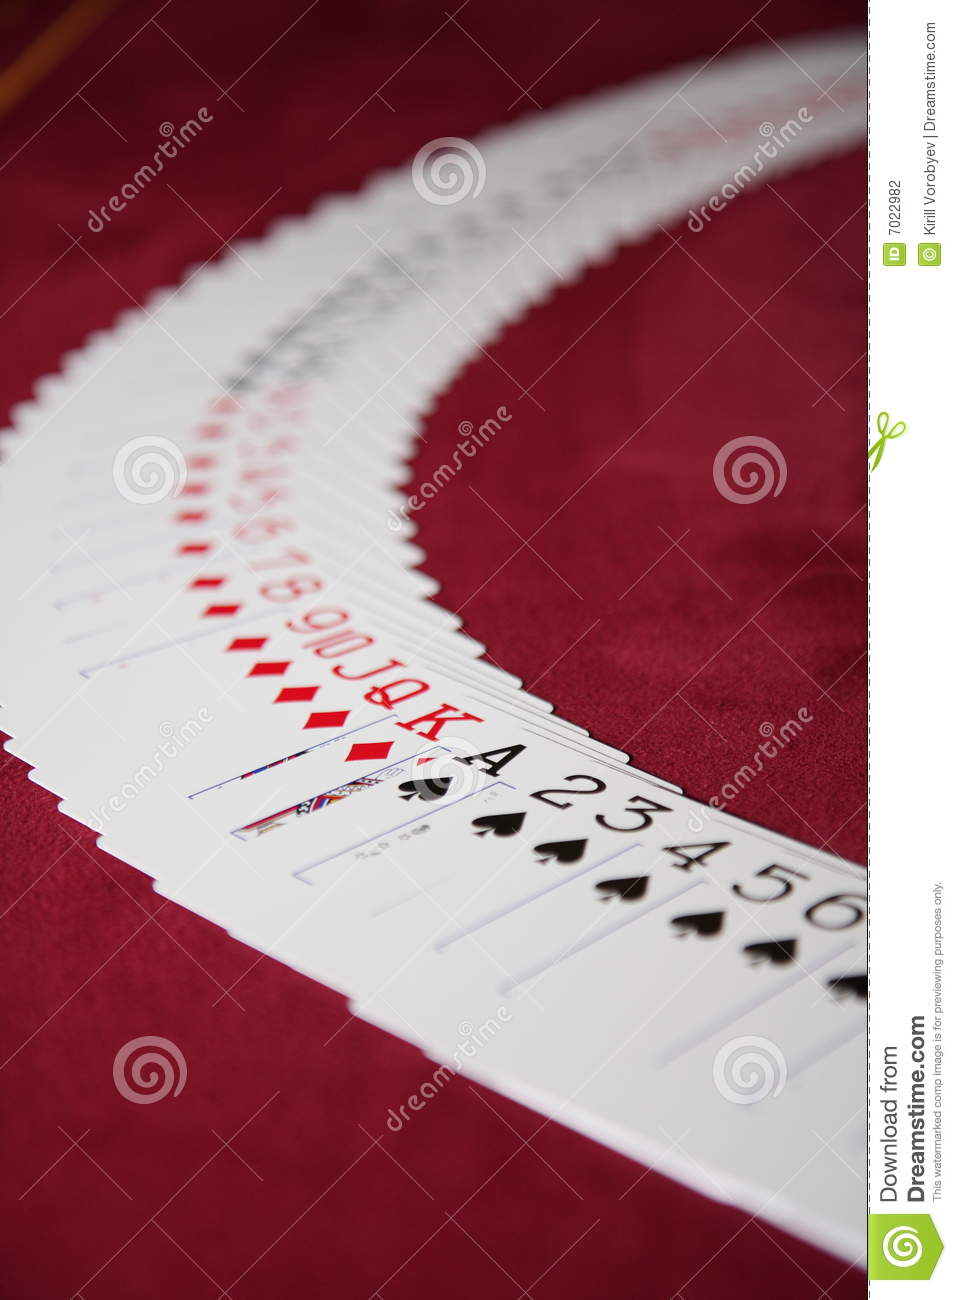 Spread Out Deck Of Cards Stock Photo Image Of Concept 7022982